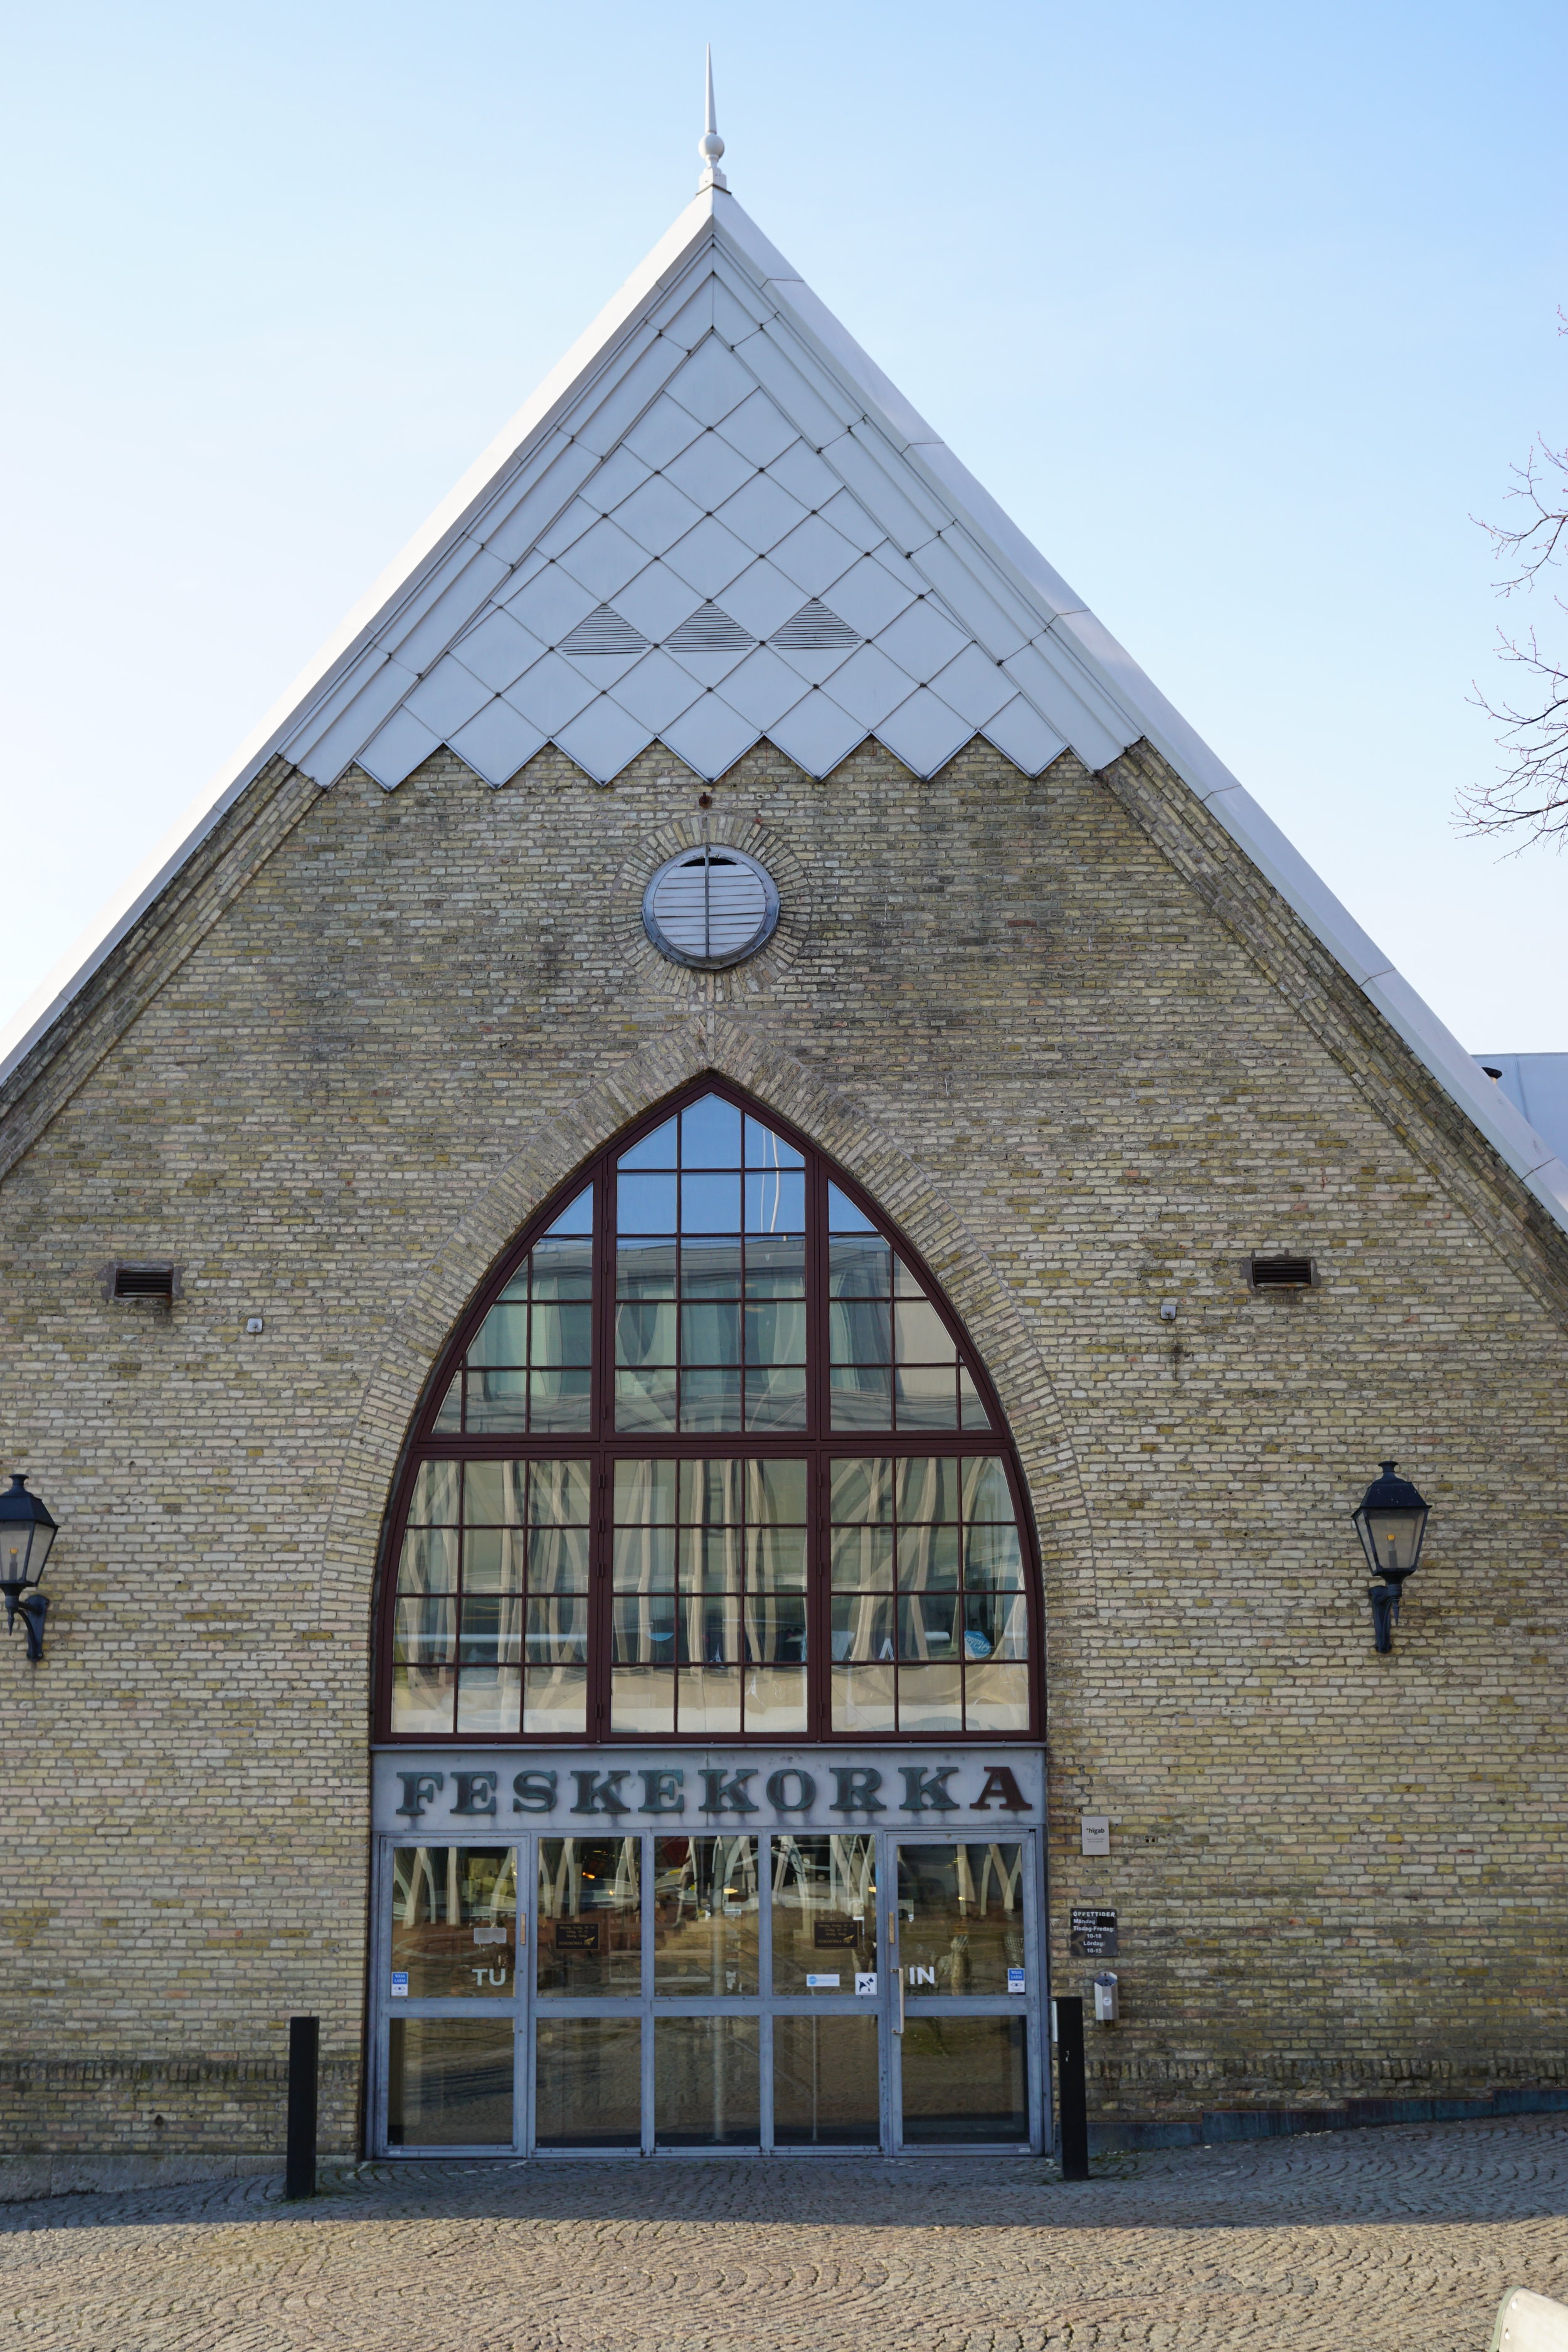 Feskekörka - The fish church - The building was built to resemble a Neo-Gothic church and houses a seafood market with a couple restaurants to enjoy fresh seafood with lovely wine pairings. This building is architecturally stunning from outside and also on the inside. This building is a popular tourist spot in Gothenburg, I went during the winter so it wasn't crowded but I'd imagine that during the summer this place can get busy.I really like Swedish caviar (no not from a tube!) from a small Northern town called Kalix. I was quite excited that feskekörka had the very specific caviar I wanted. I bought a small serving of kalix löjrom from one of the fishmongers and some knäckebröd (baked cracker bread) for snacking in my airbnb. If you haven't had Swedish fish eggs yet, try it!